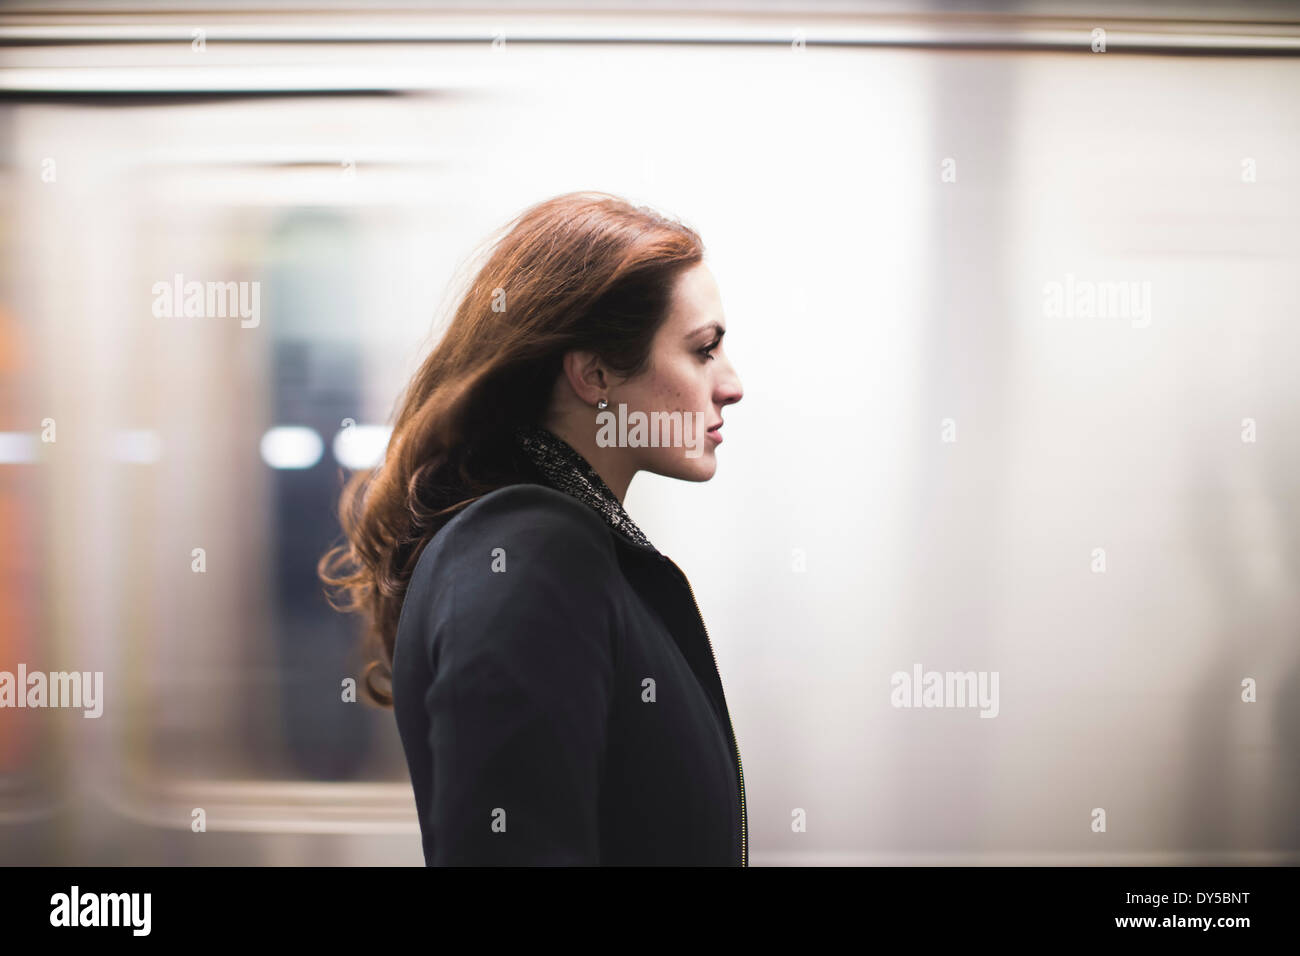 Young woman commuting on subway - Stock Image